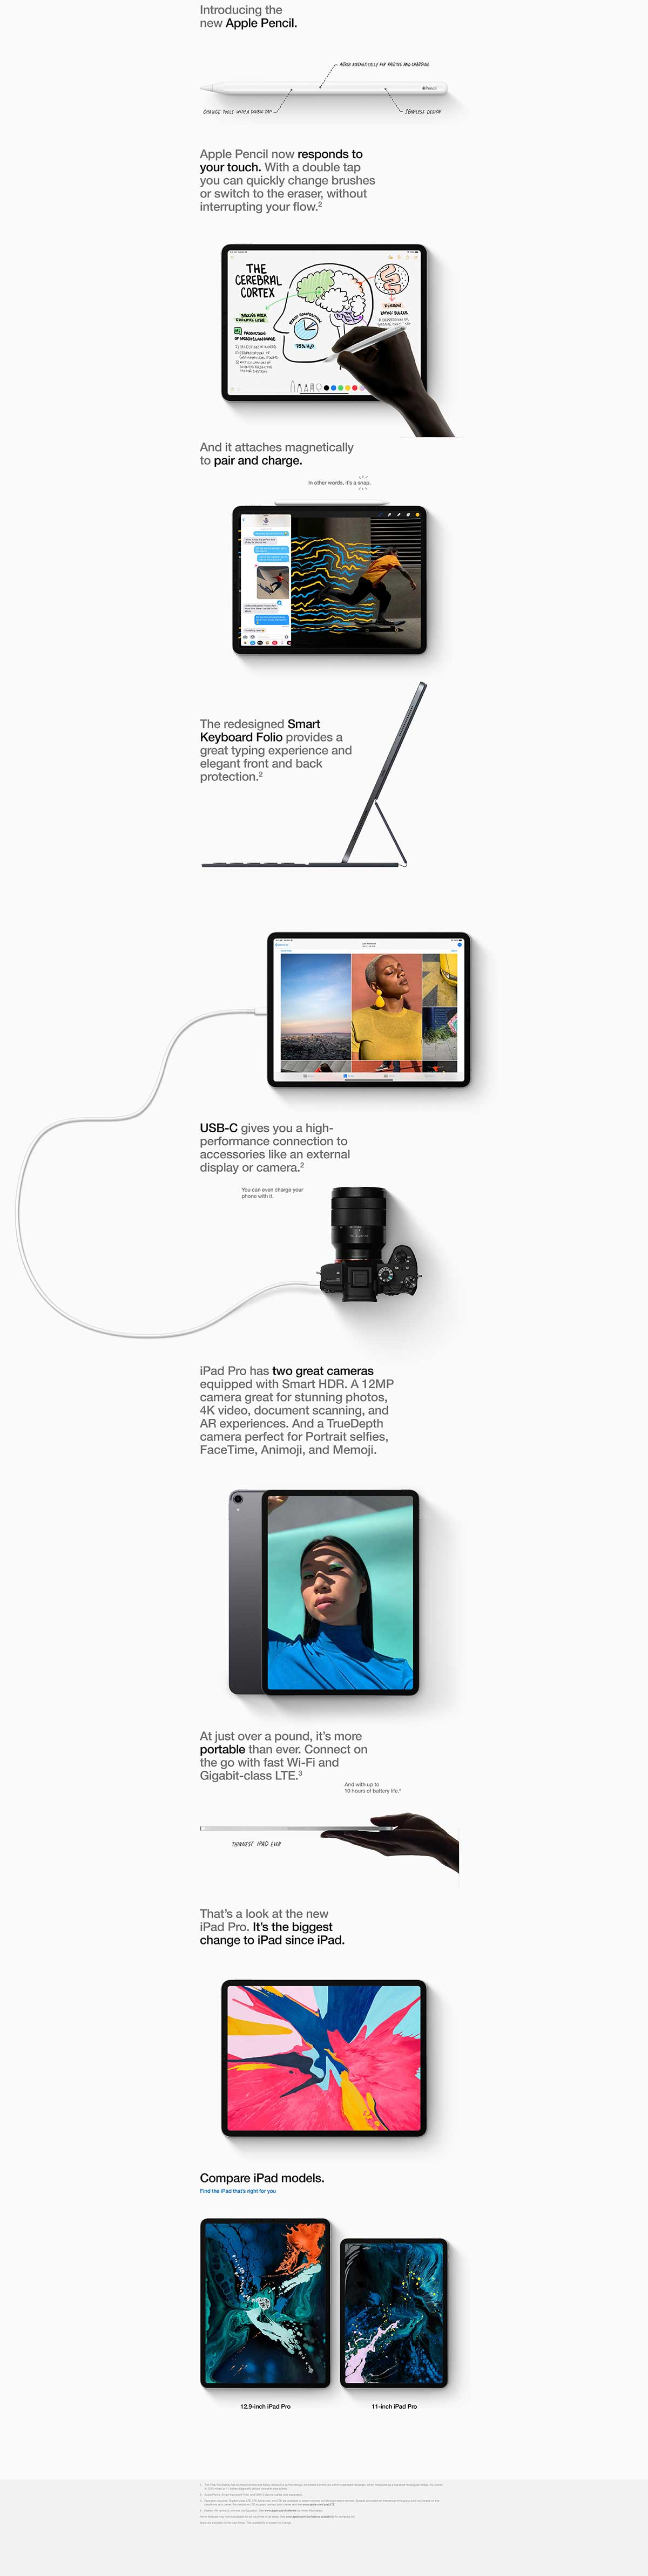 iPad Pro 12.9 Product Overview part 2